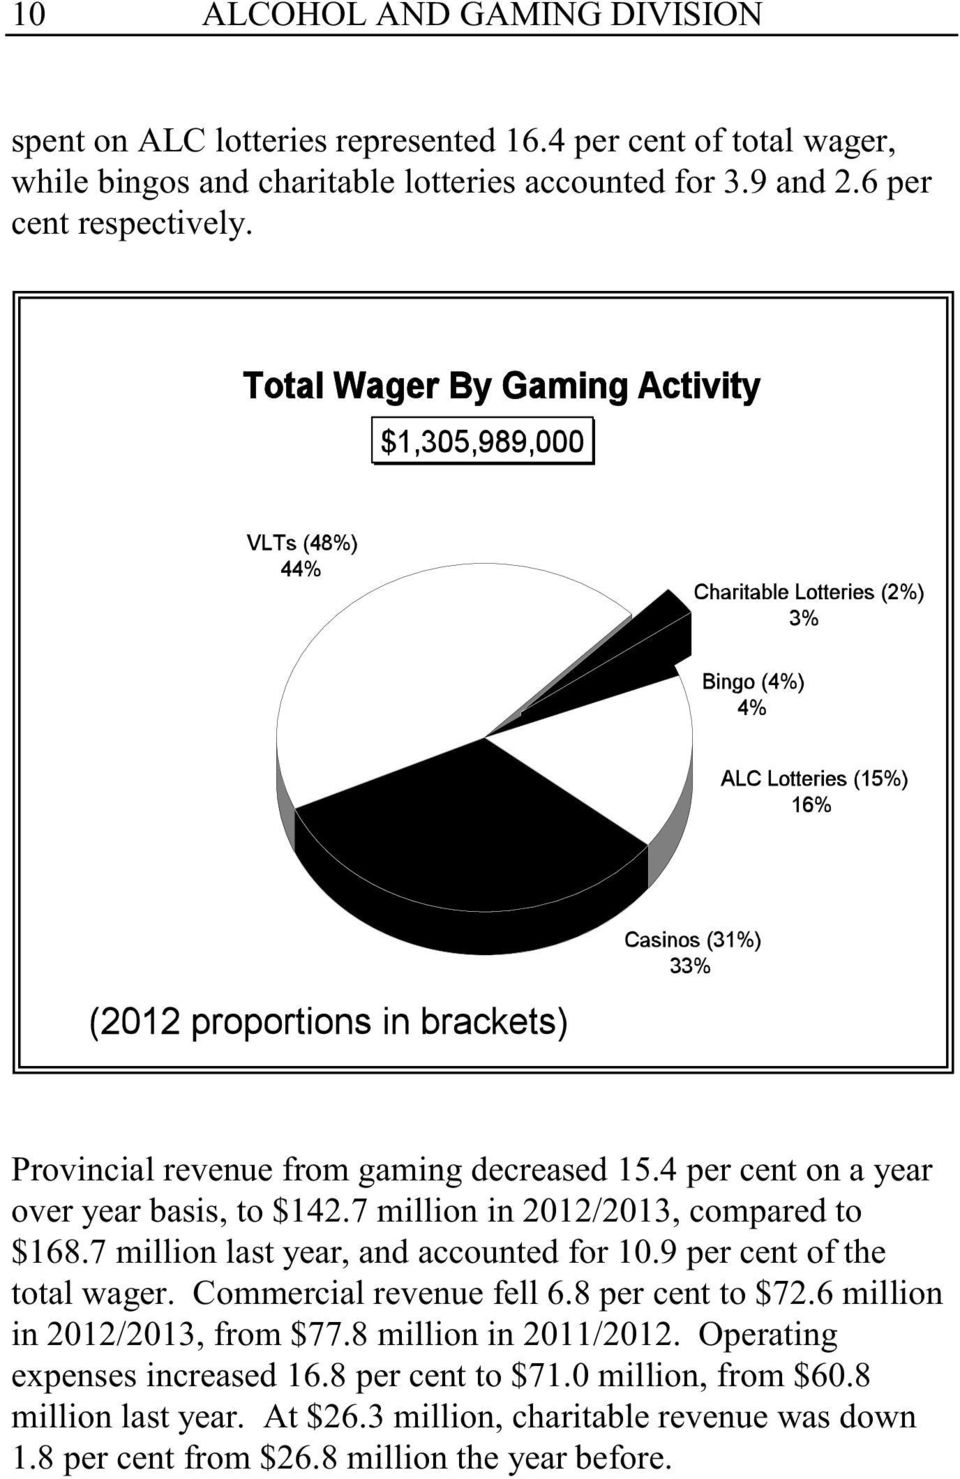 7 million last year, and accounted for 10.9 per cent of the total wager. Commercial revenue fell 6.8 per cent to $72.6 million in 2012/2013, from $77.